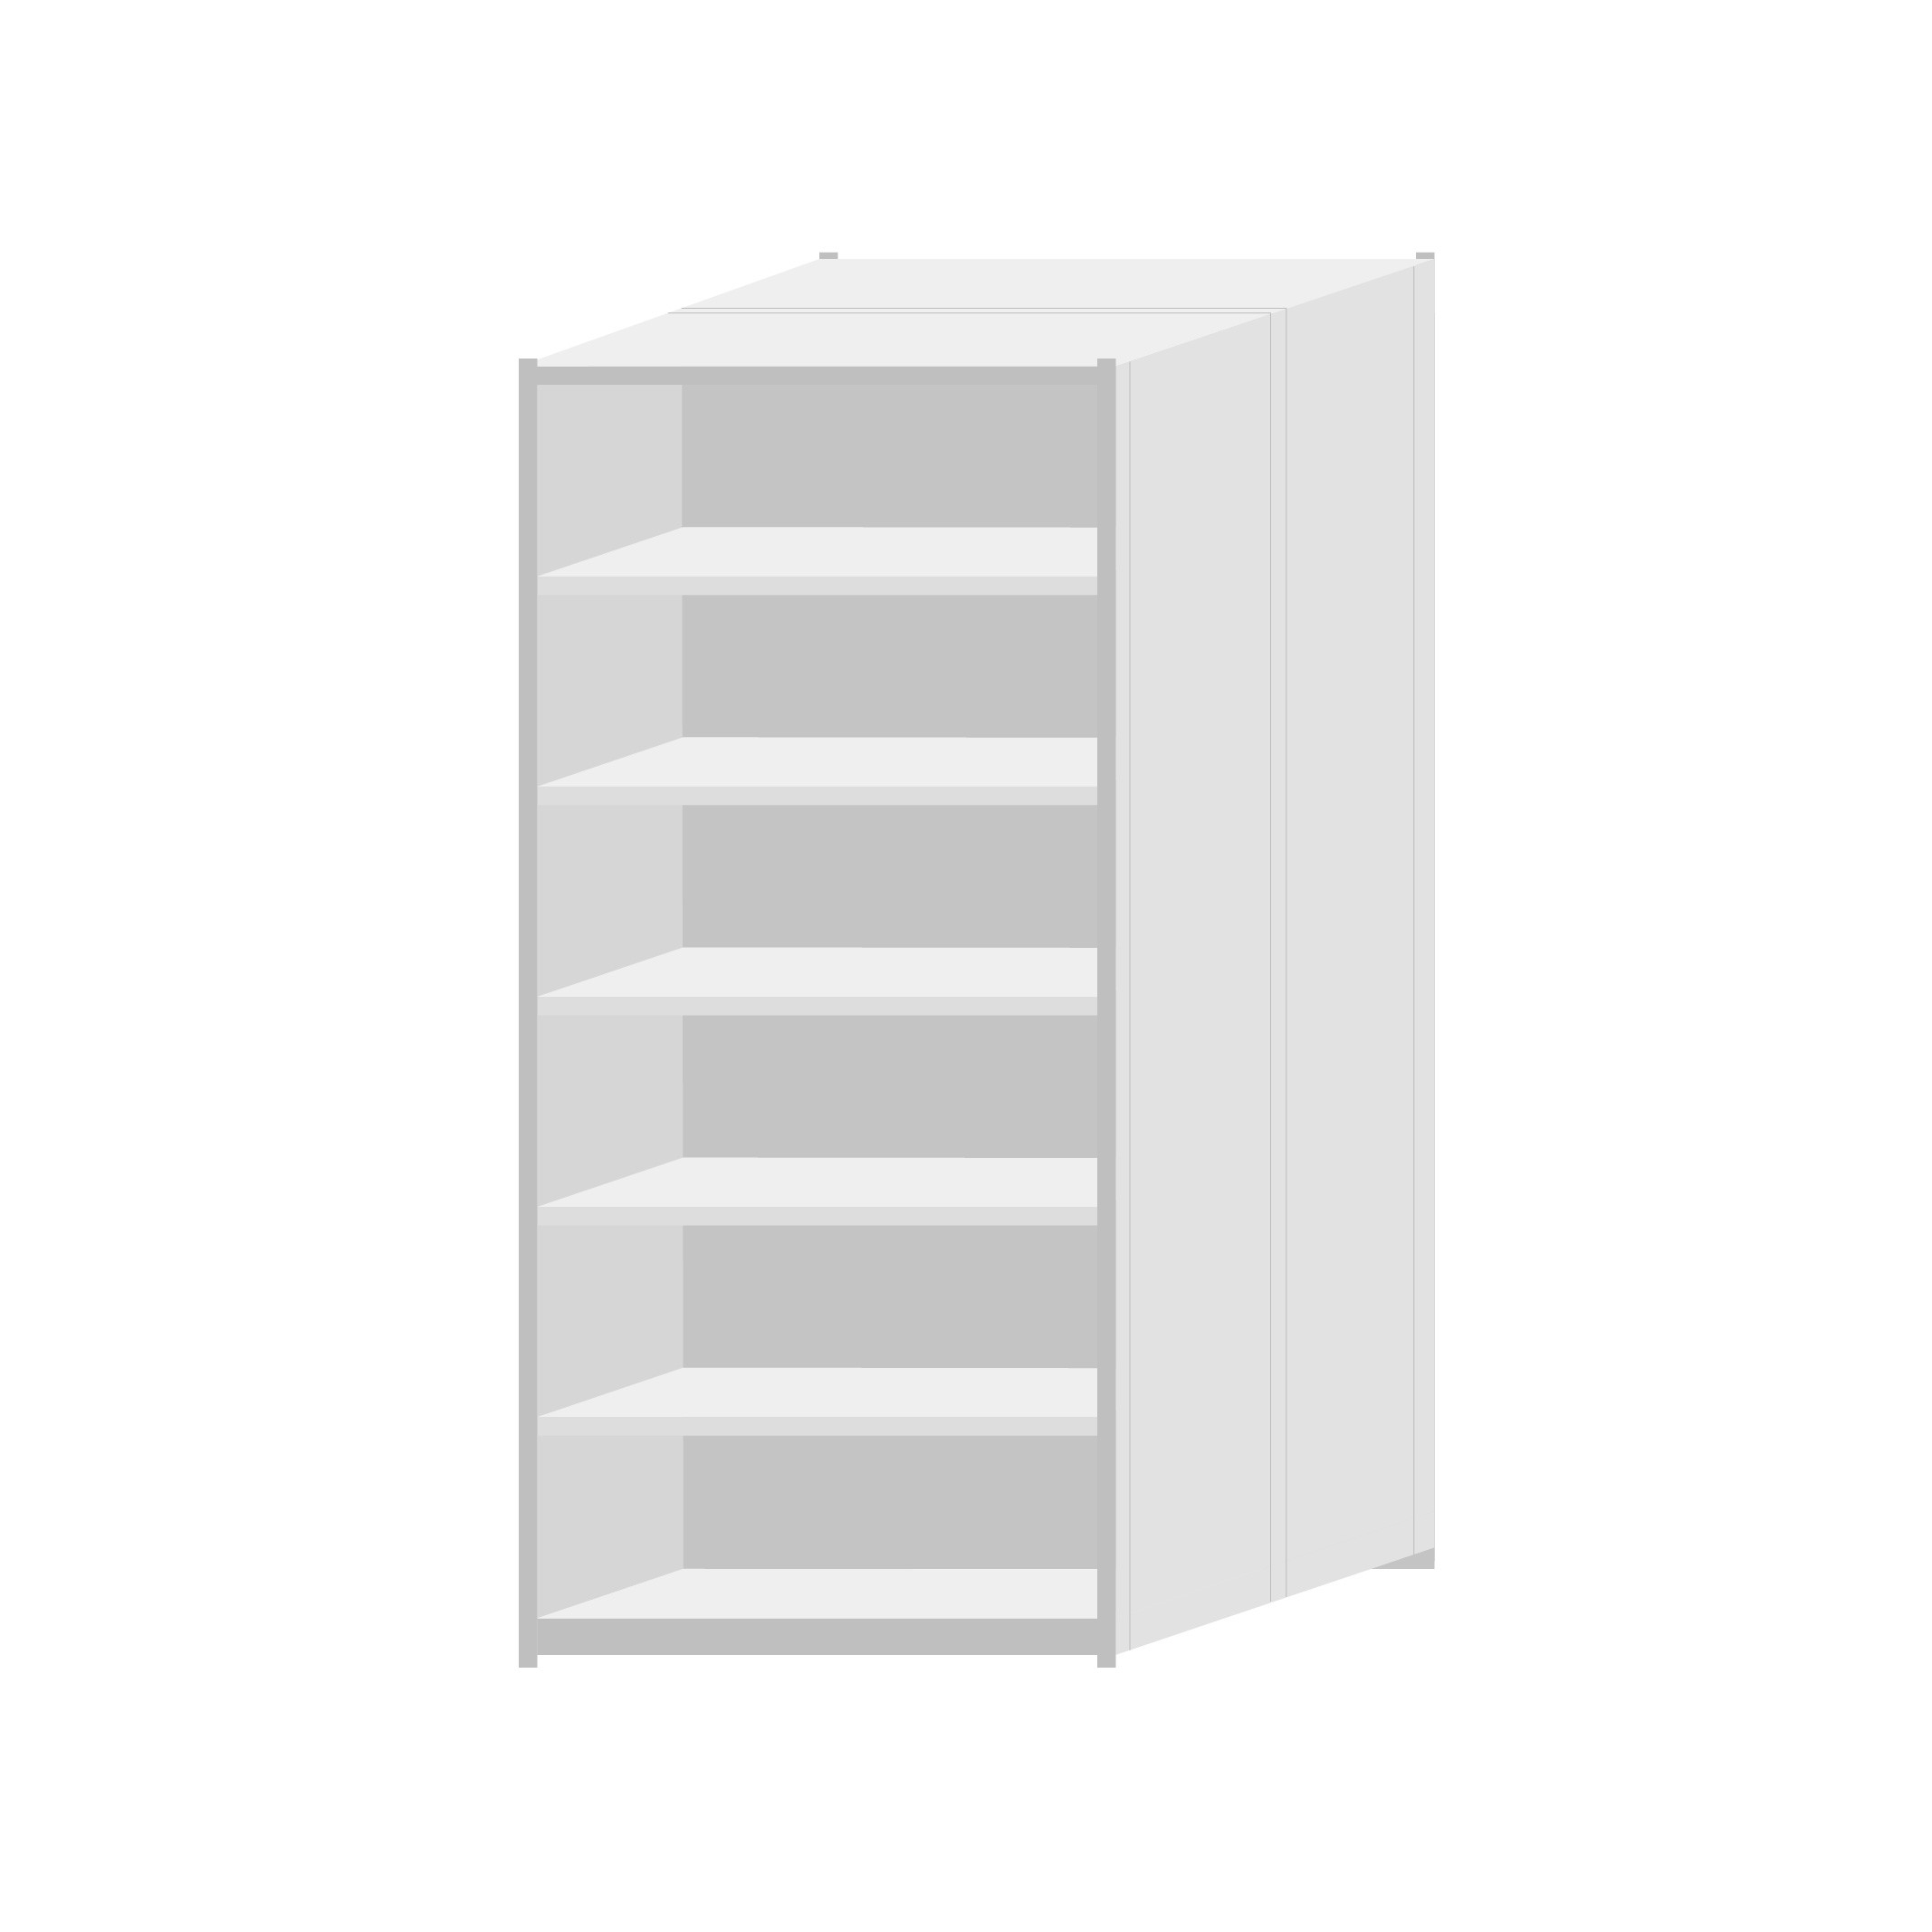 RUT Shelving 900mm Wide - 7 Levels (Double Sided)